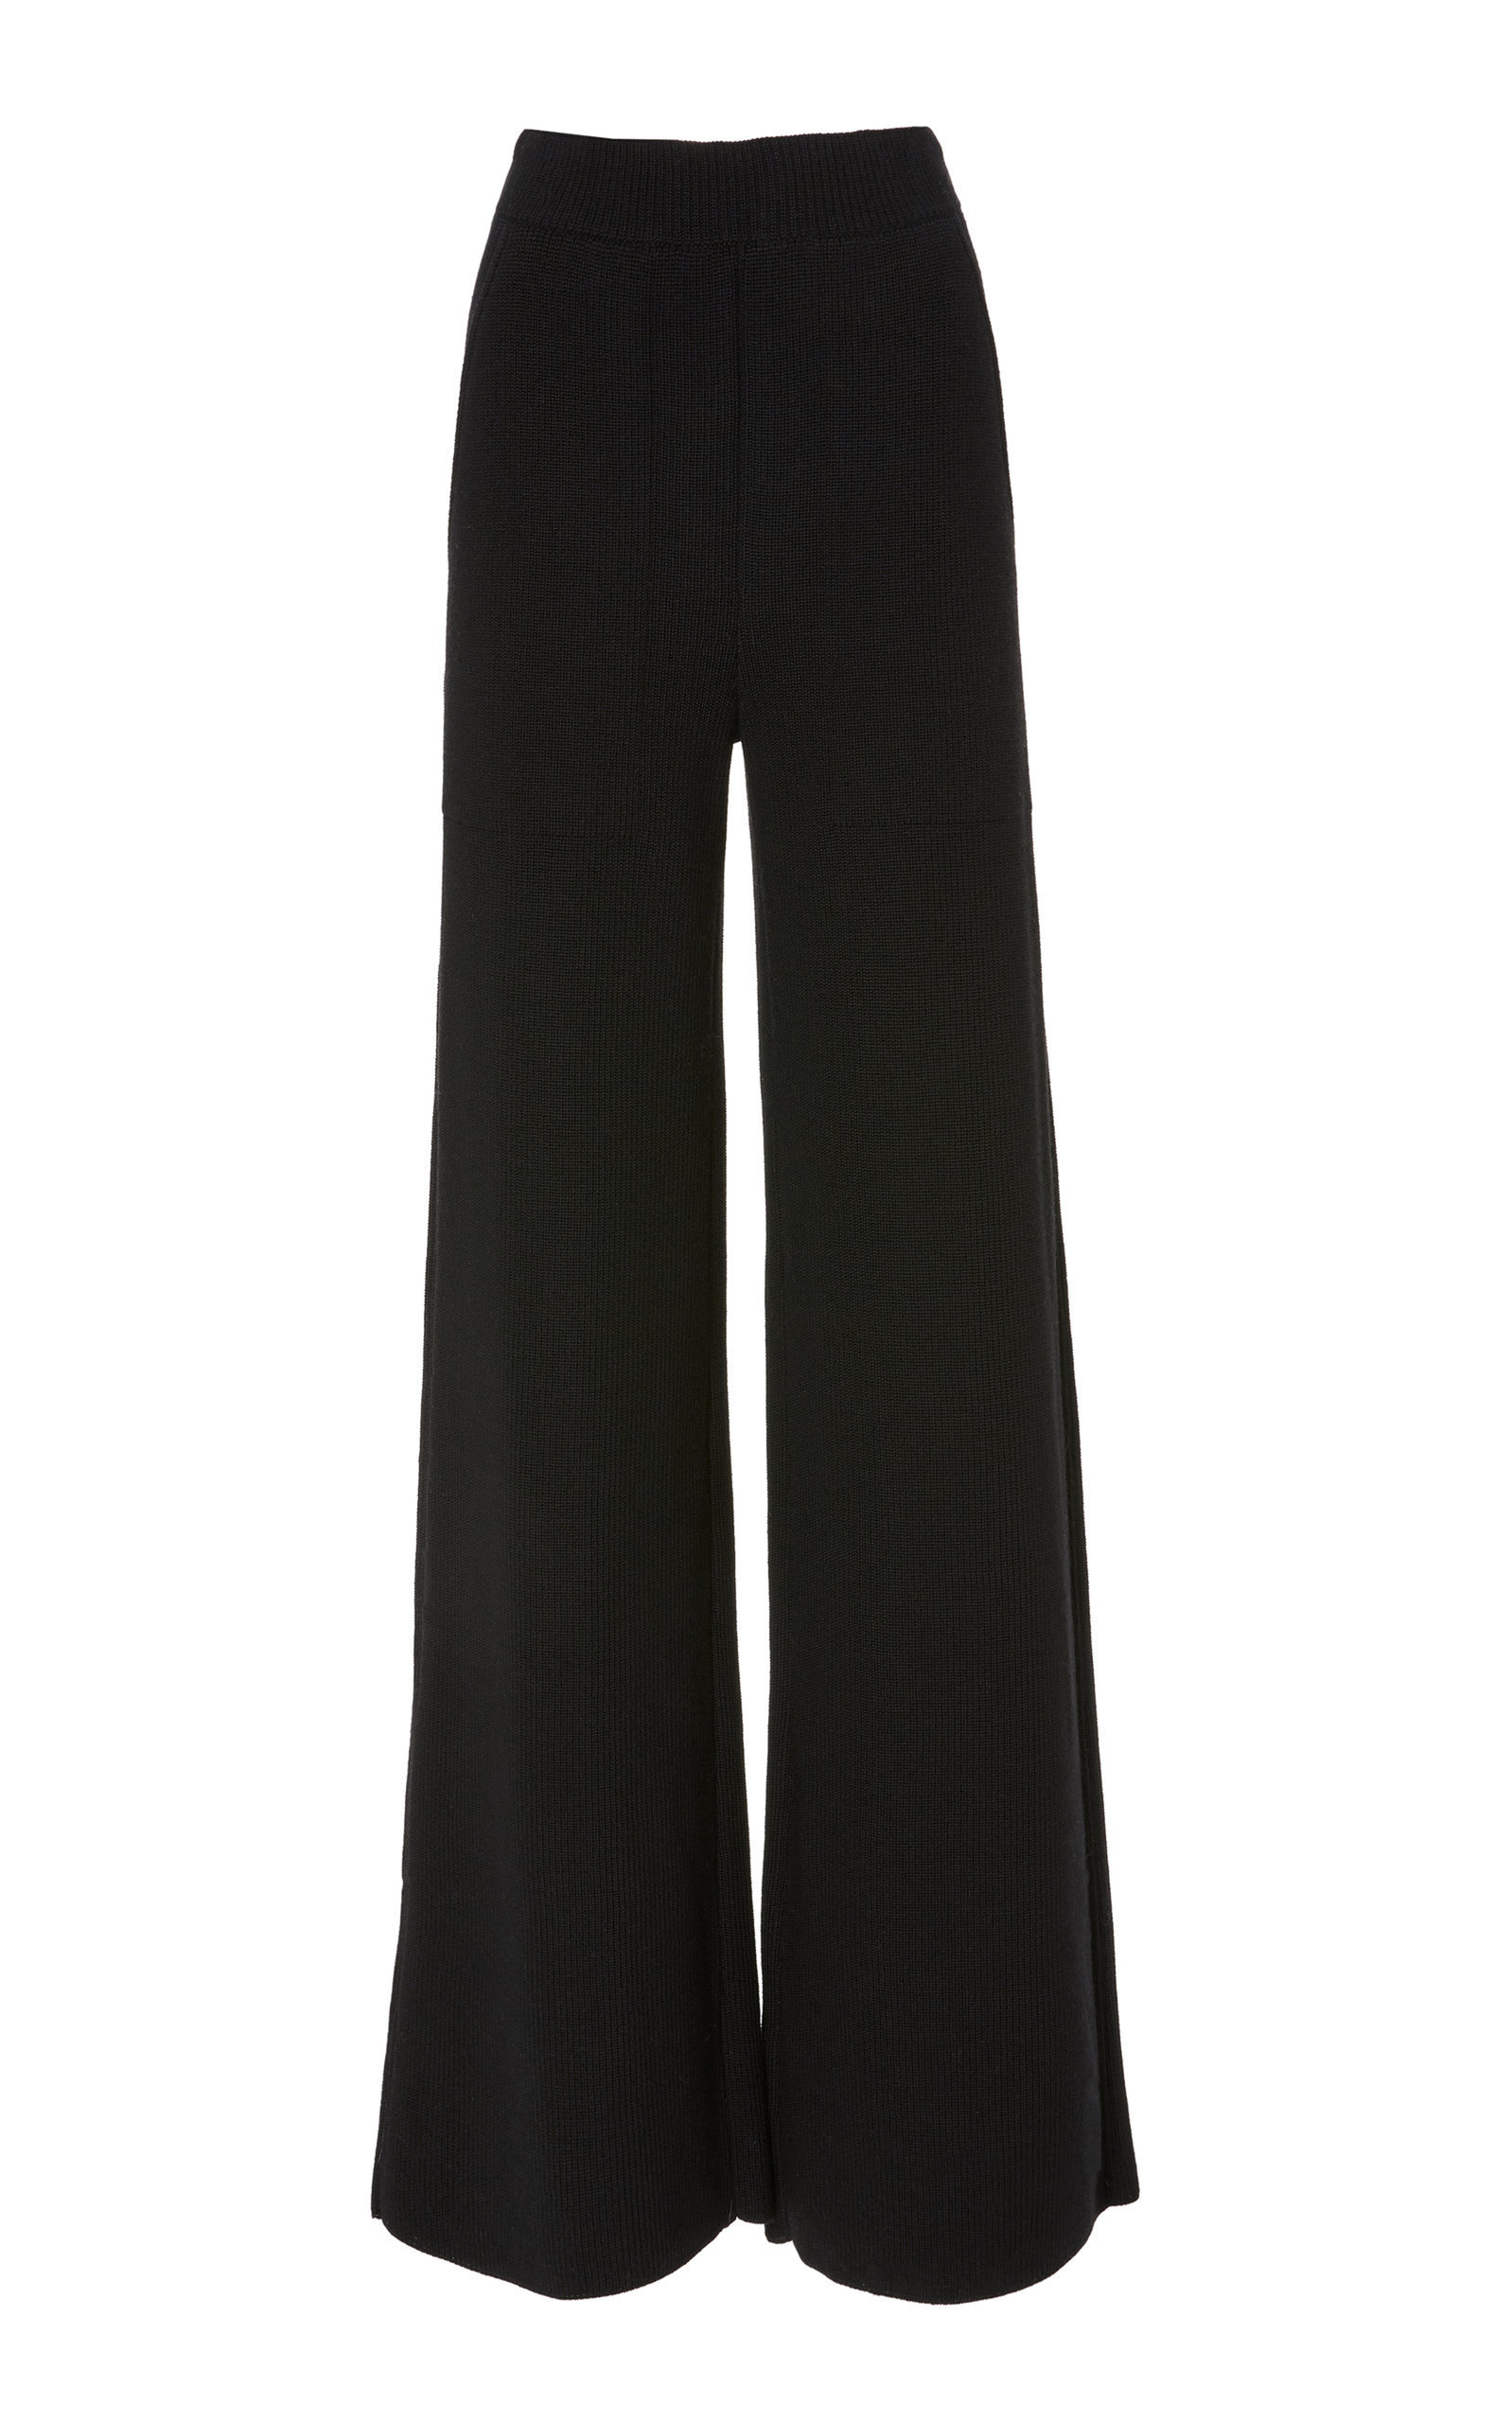 YEON M'O Exclusive Penelope Wide-Leg Wool Trousers in Black